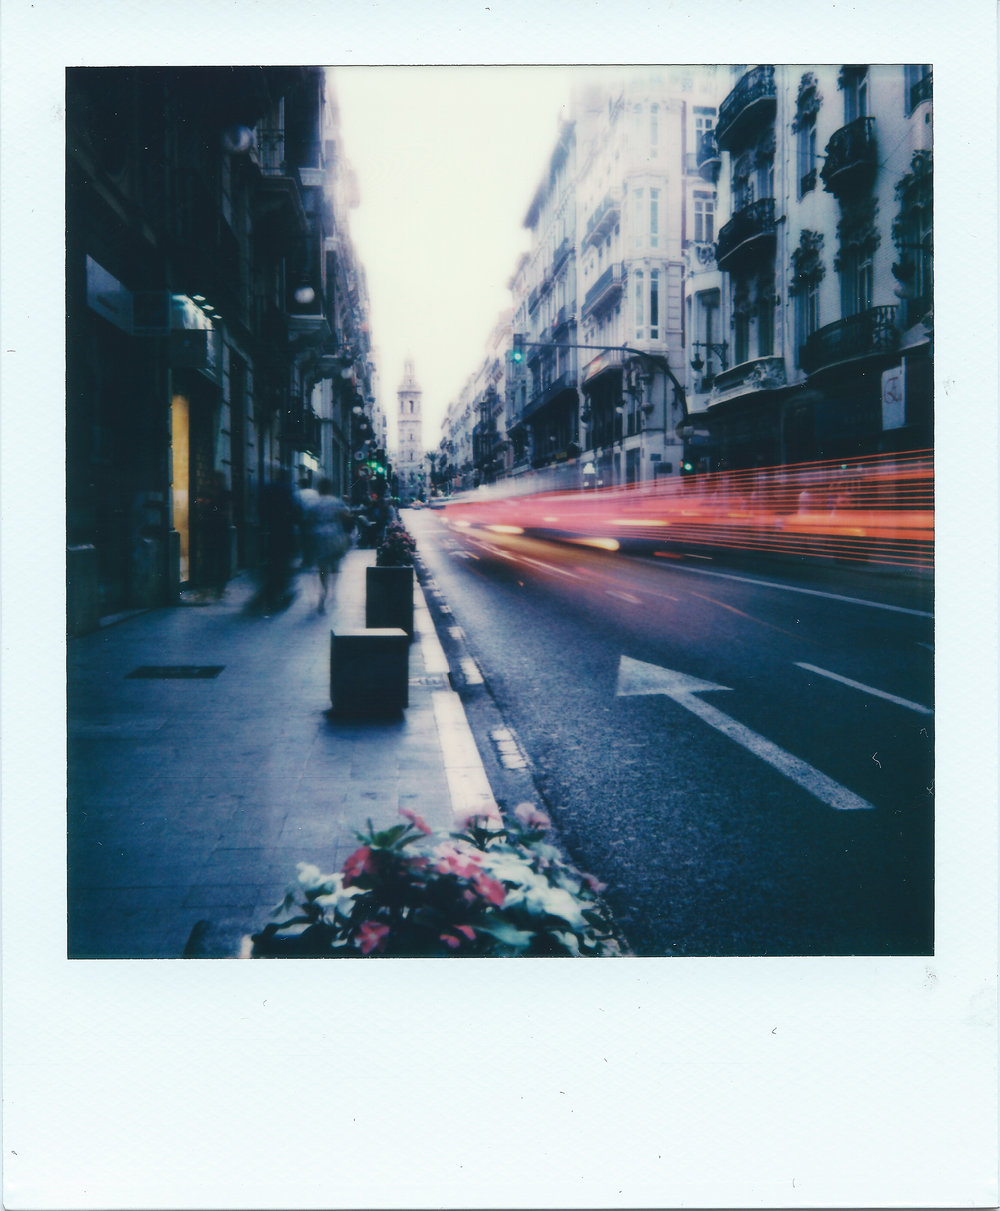 Carrer De La Pau | Impossible Project I-1 | Impossible Project I-Type Film | Ray Liu